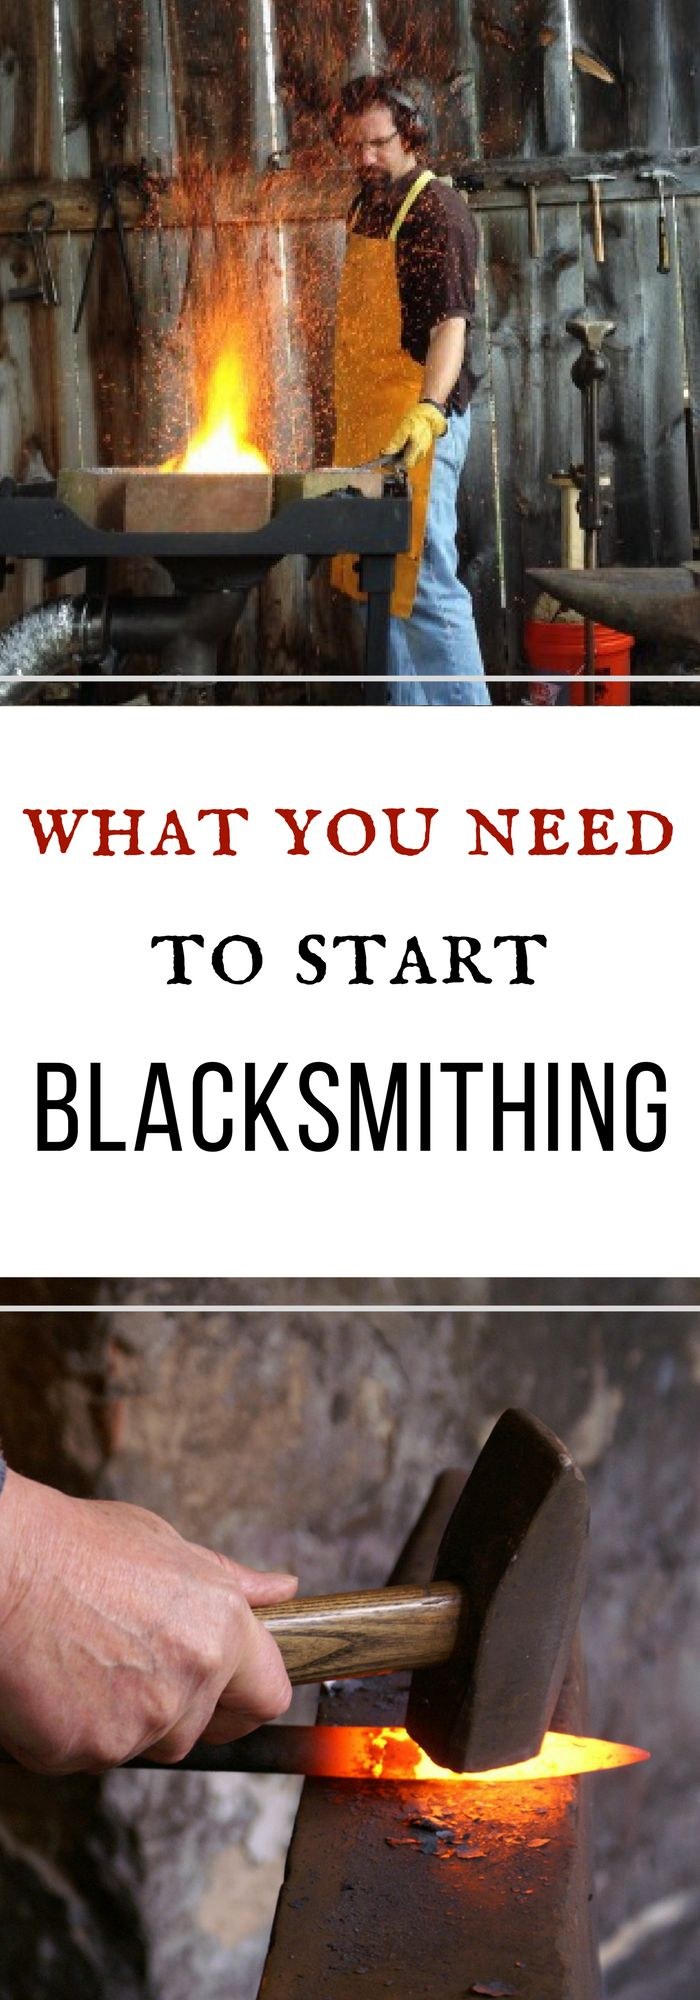 What you need to start blacksmithing at home - this will tell you all about what you need to get started!